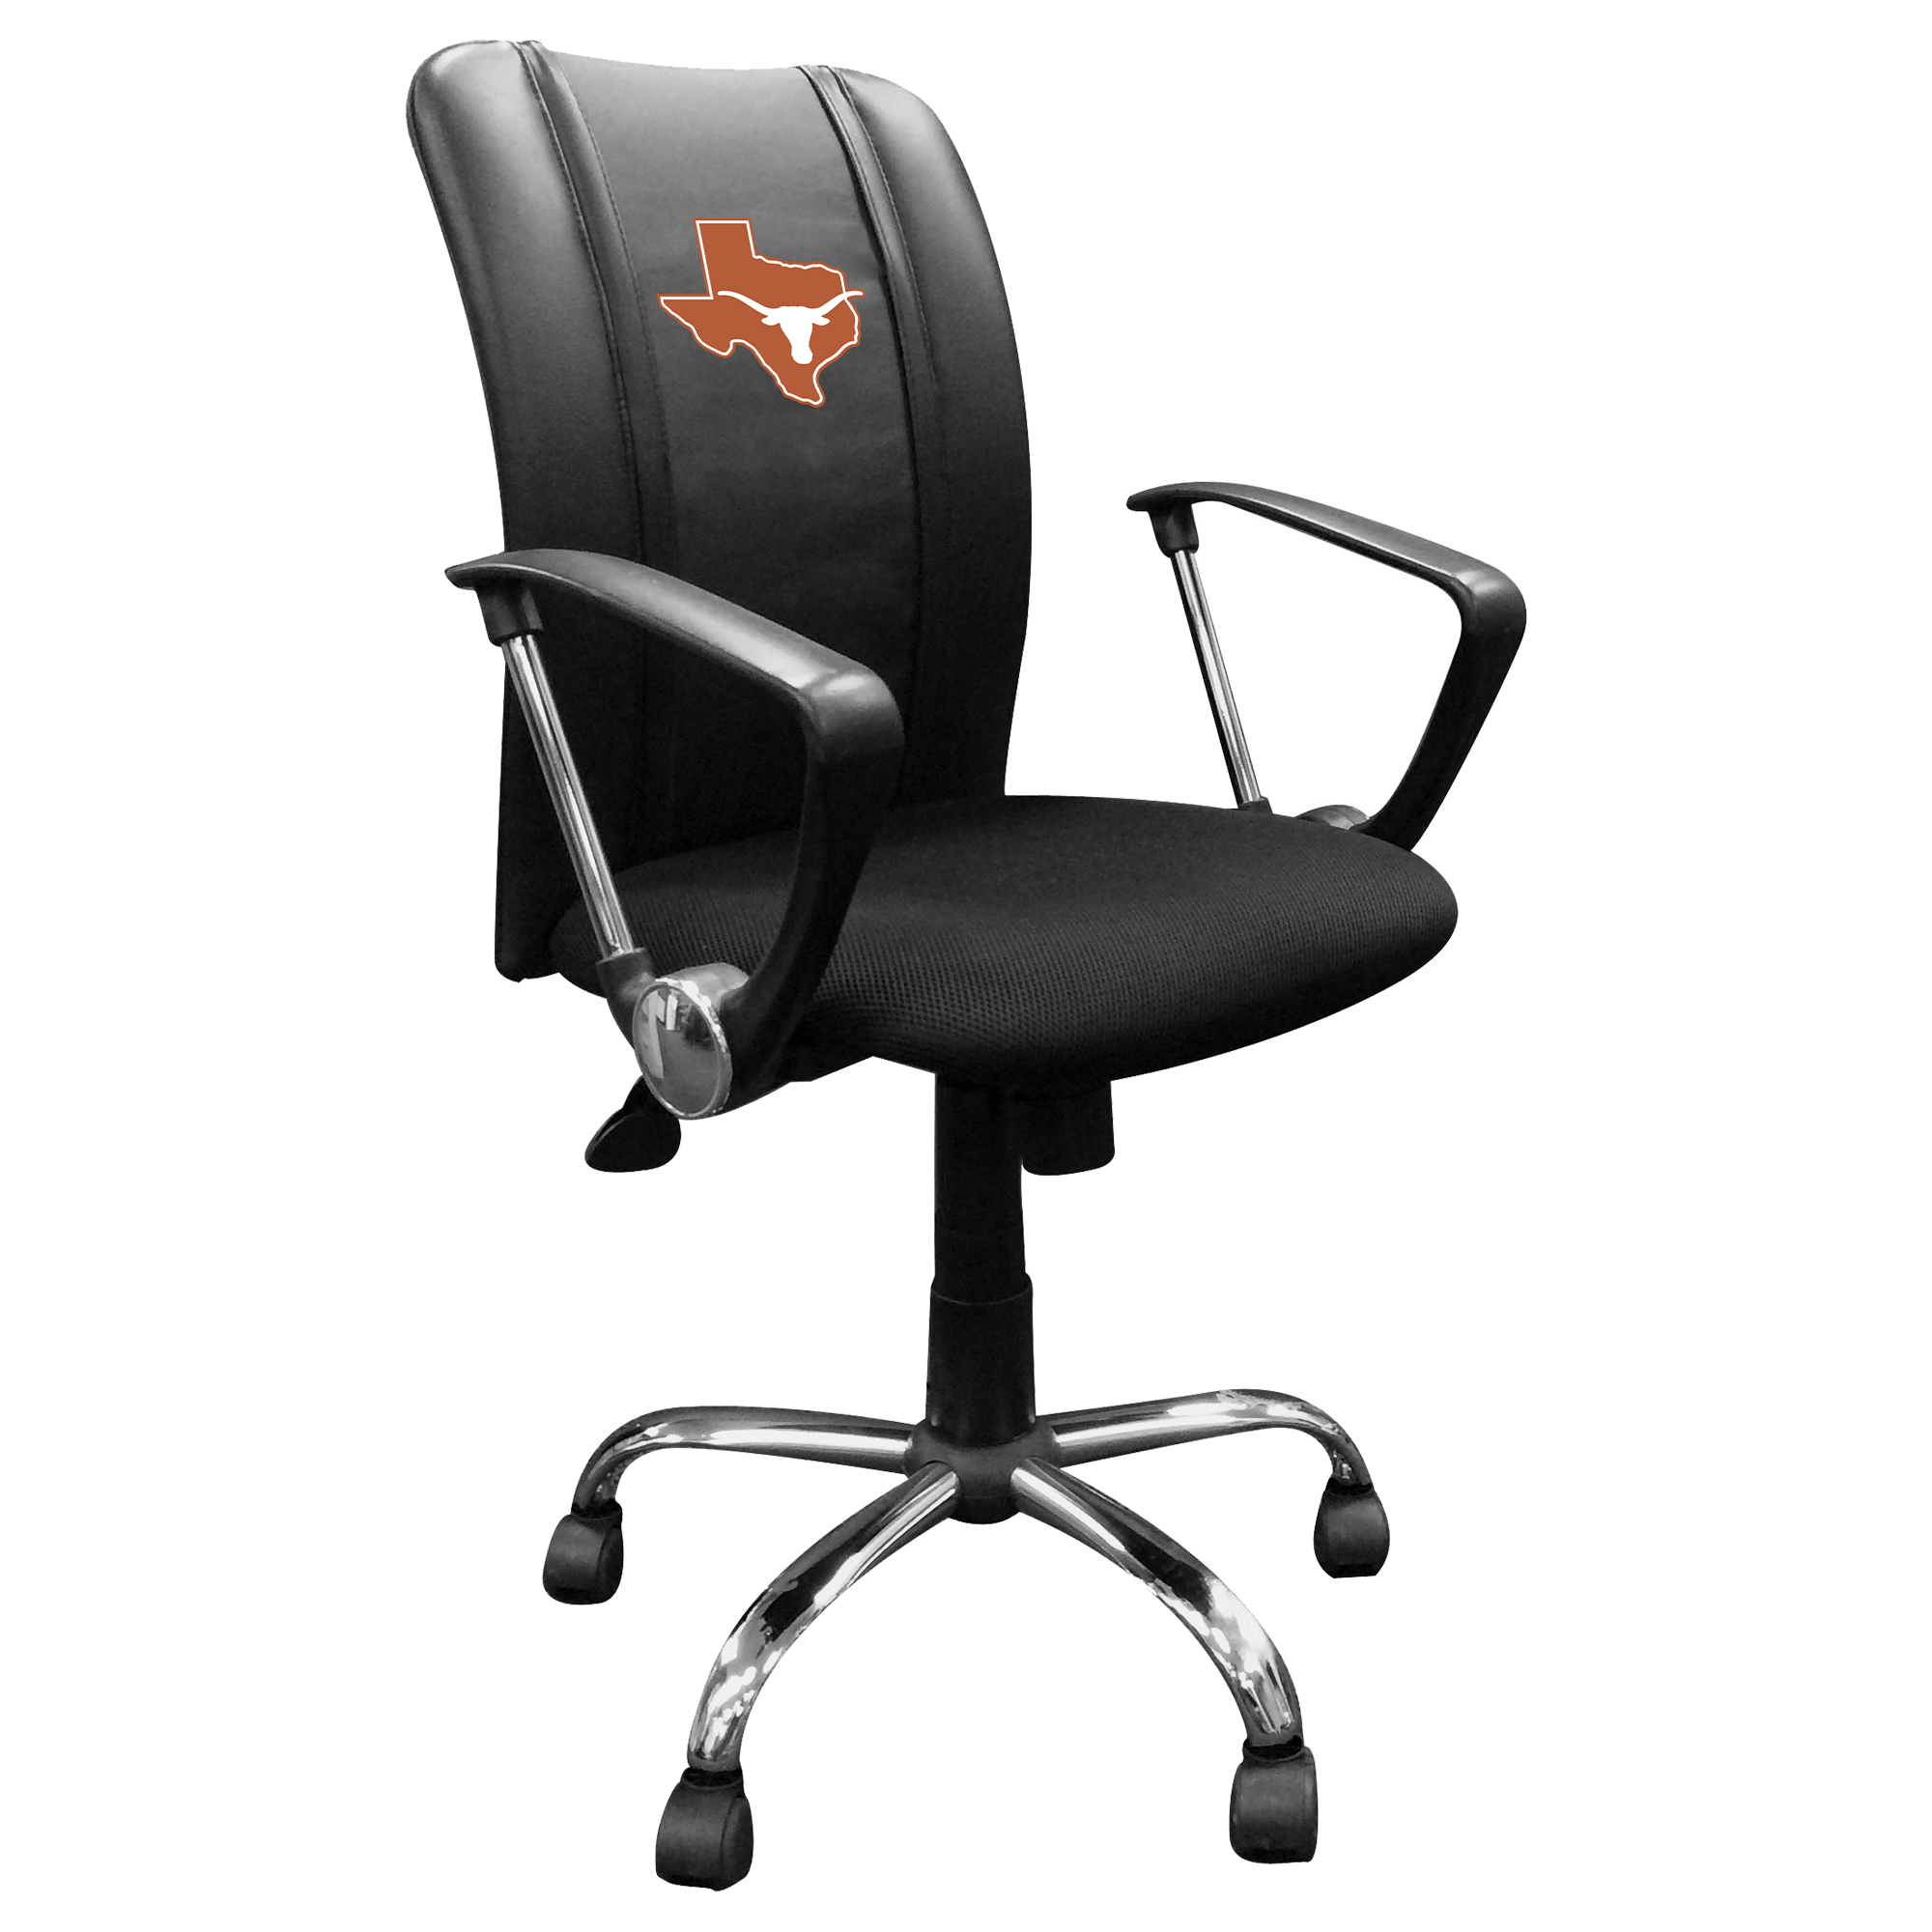 Curve Task Chair with Texas Longhorns Secondary